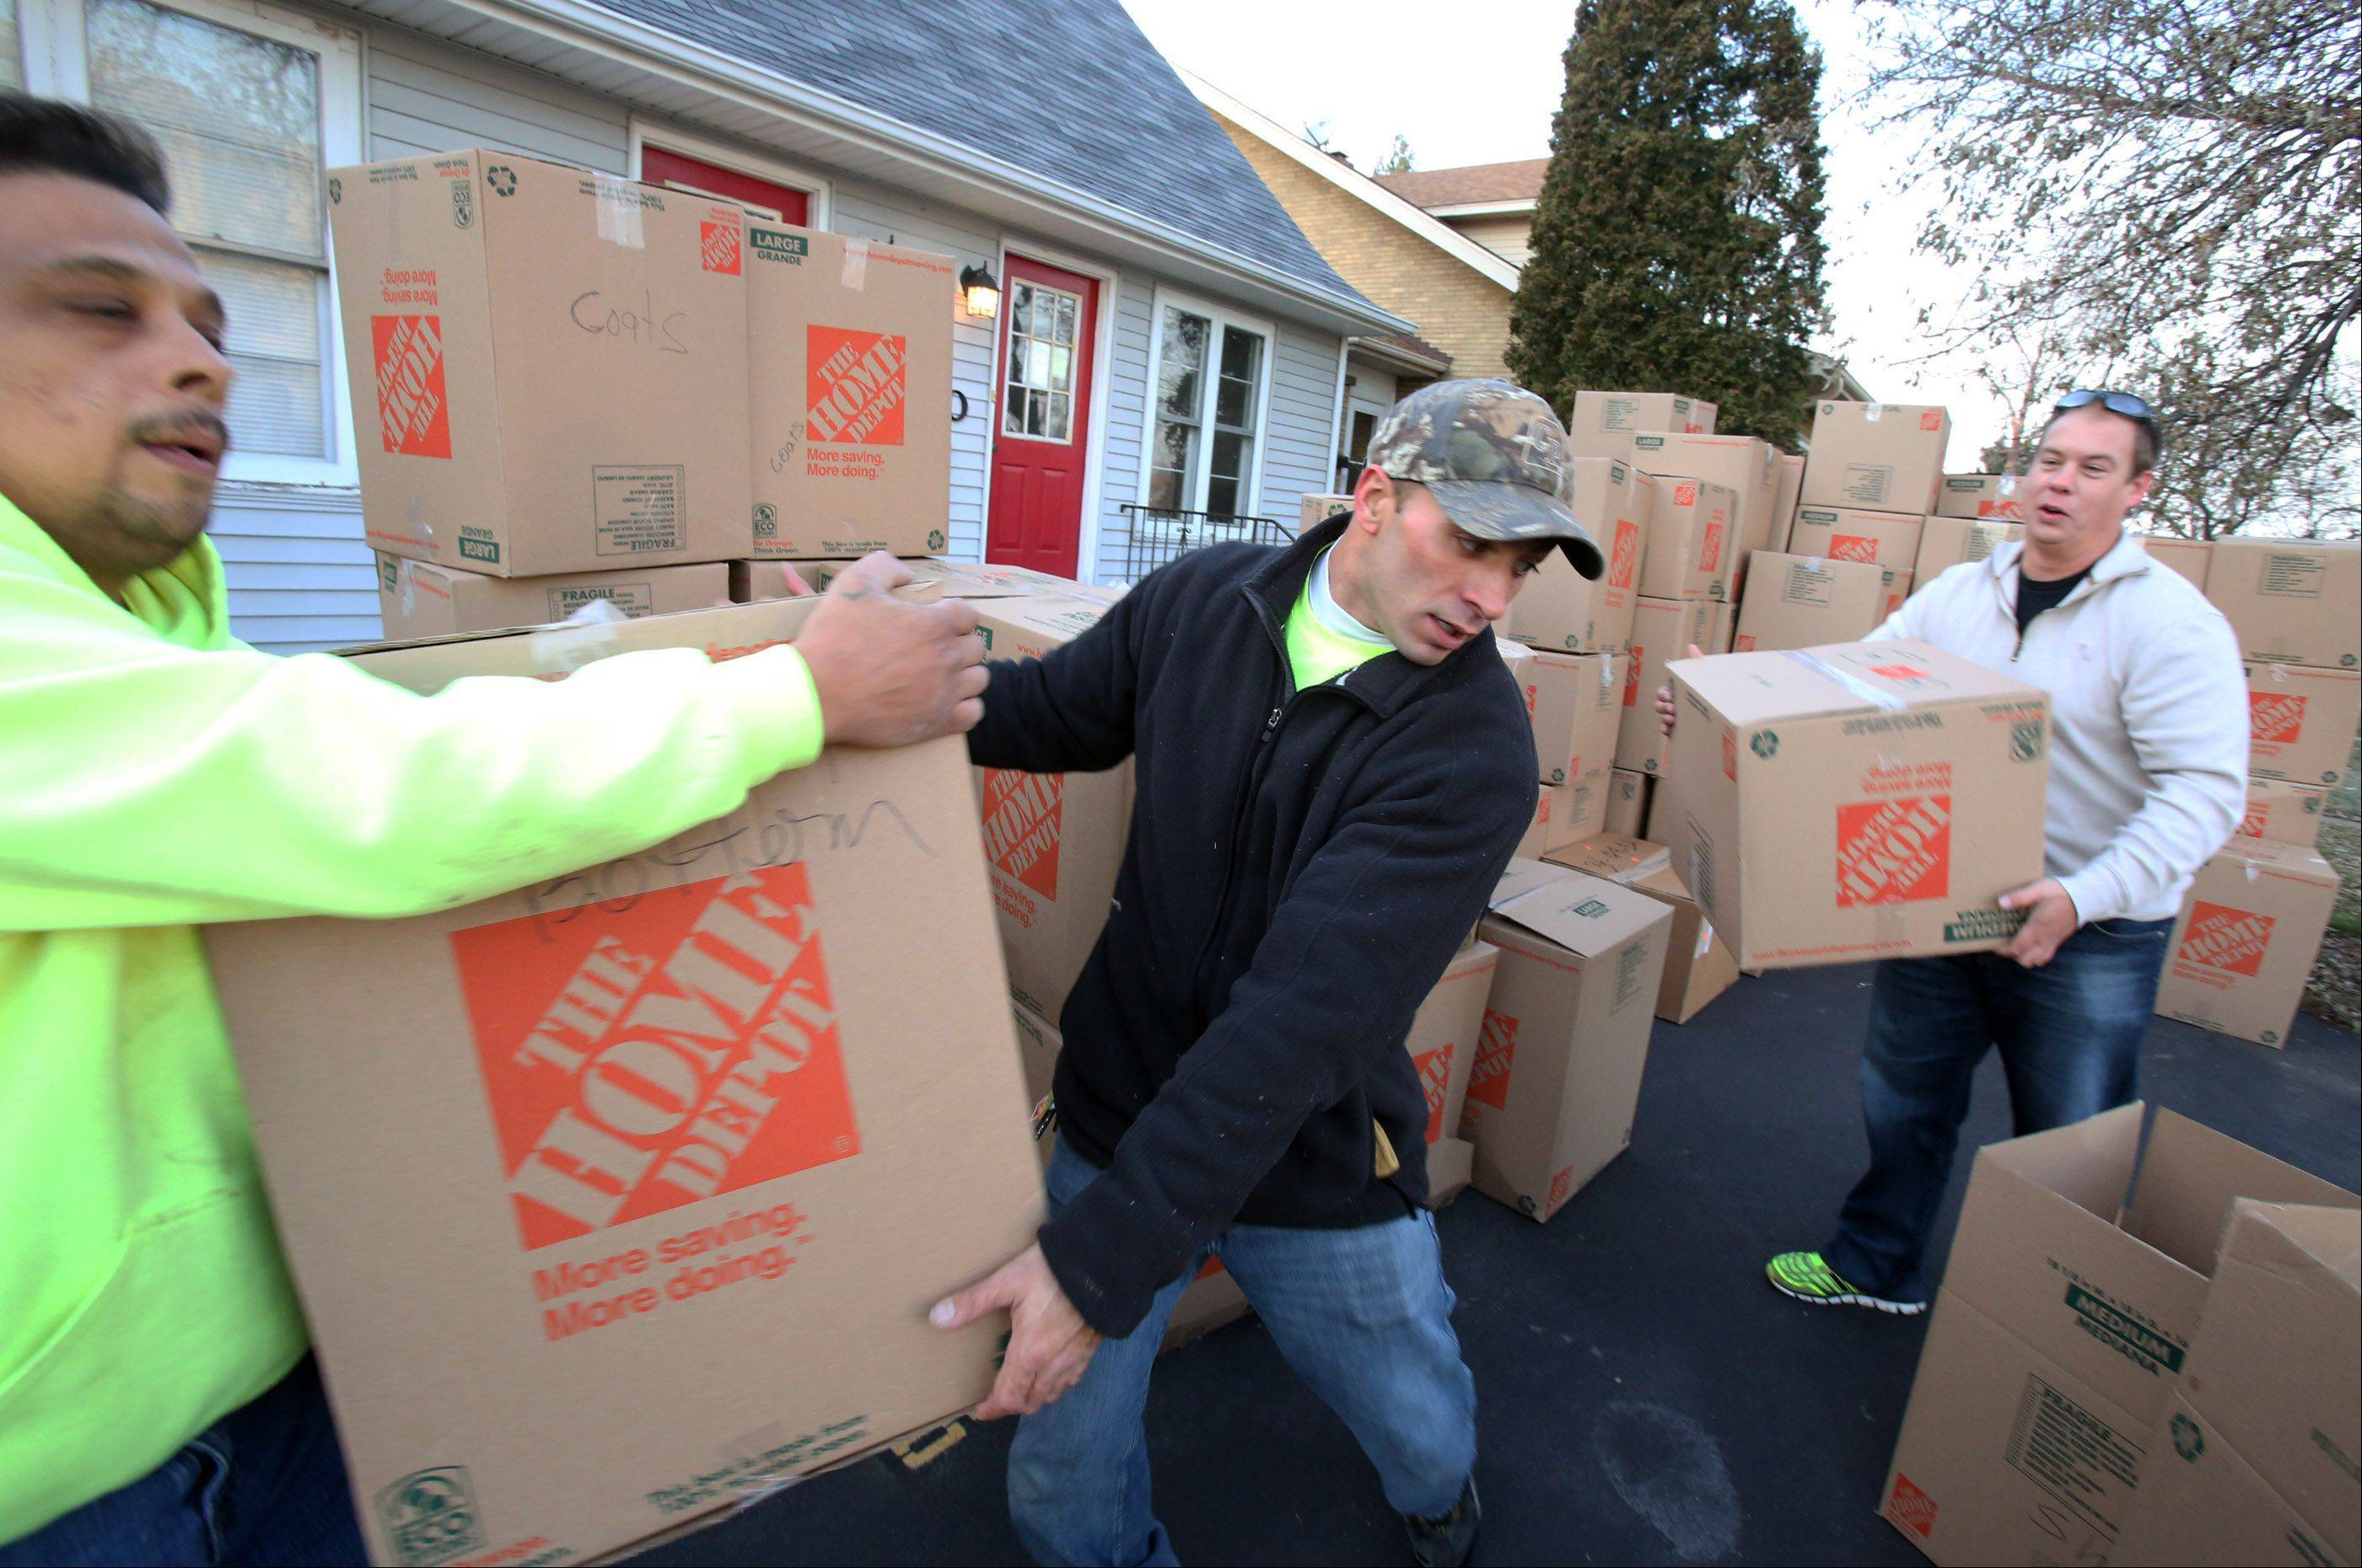 Eddie Guevara takes a box from John Castiglione, both crew leaders at North Village Group, as the companies CEO Sean Sandona bring up a another box as workers from the Des Plaines-based construction supply firm load boxes filled with winter clothing, construction safety equipment, and general items into a truck on Friday in Des Plaines which are destined for tornado-ravaged Washington on Saturday.